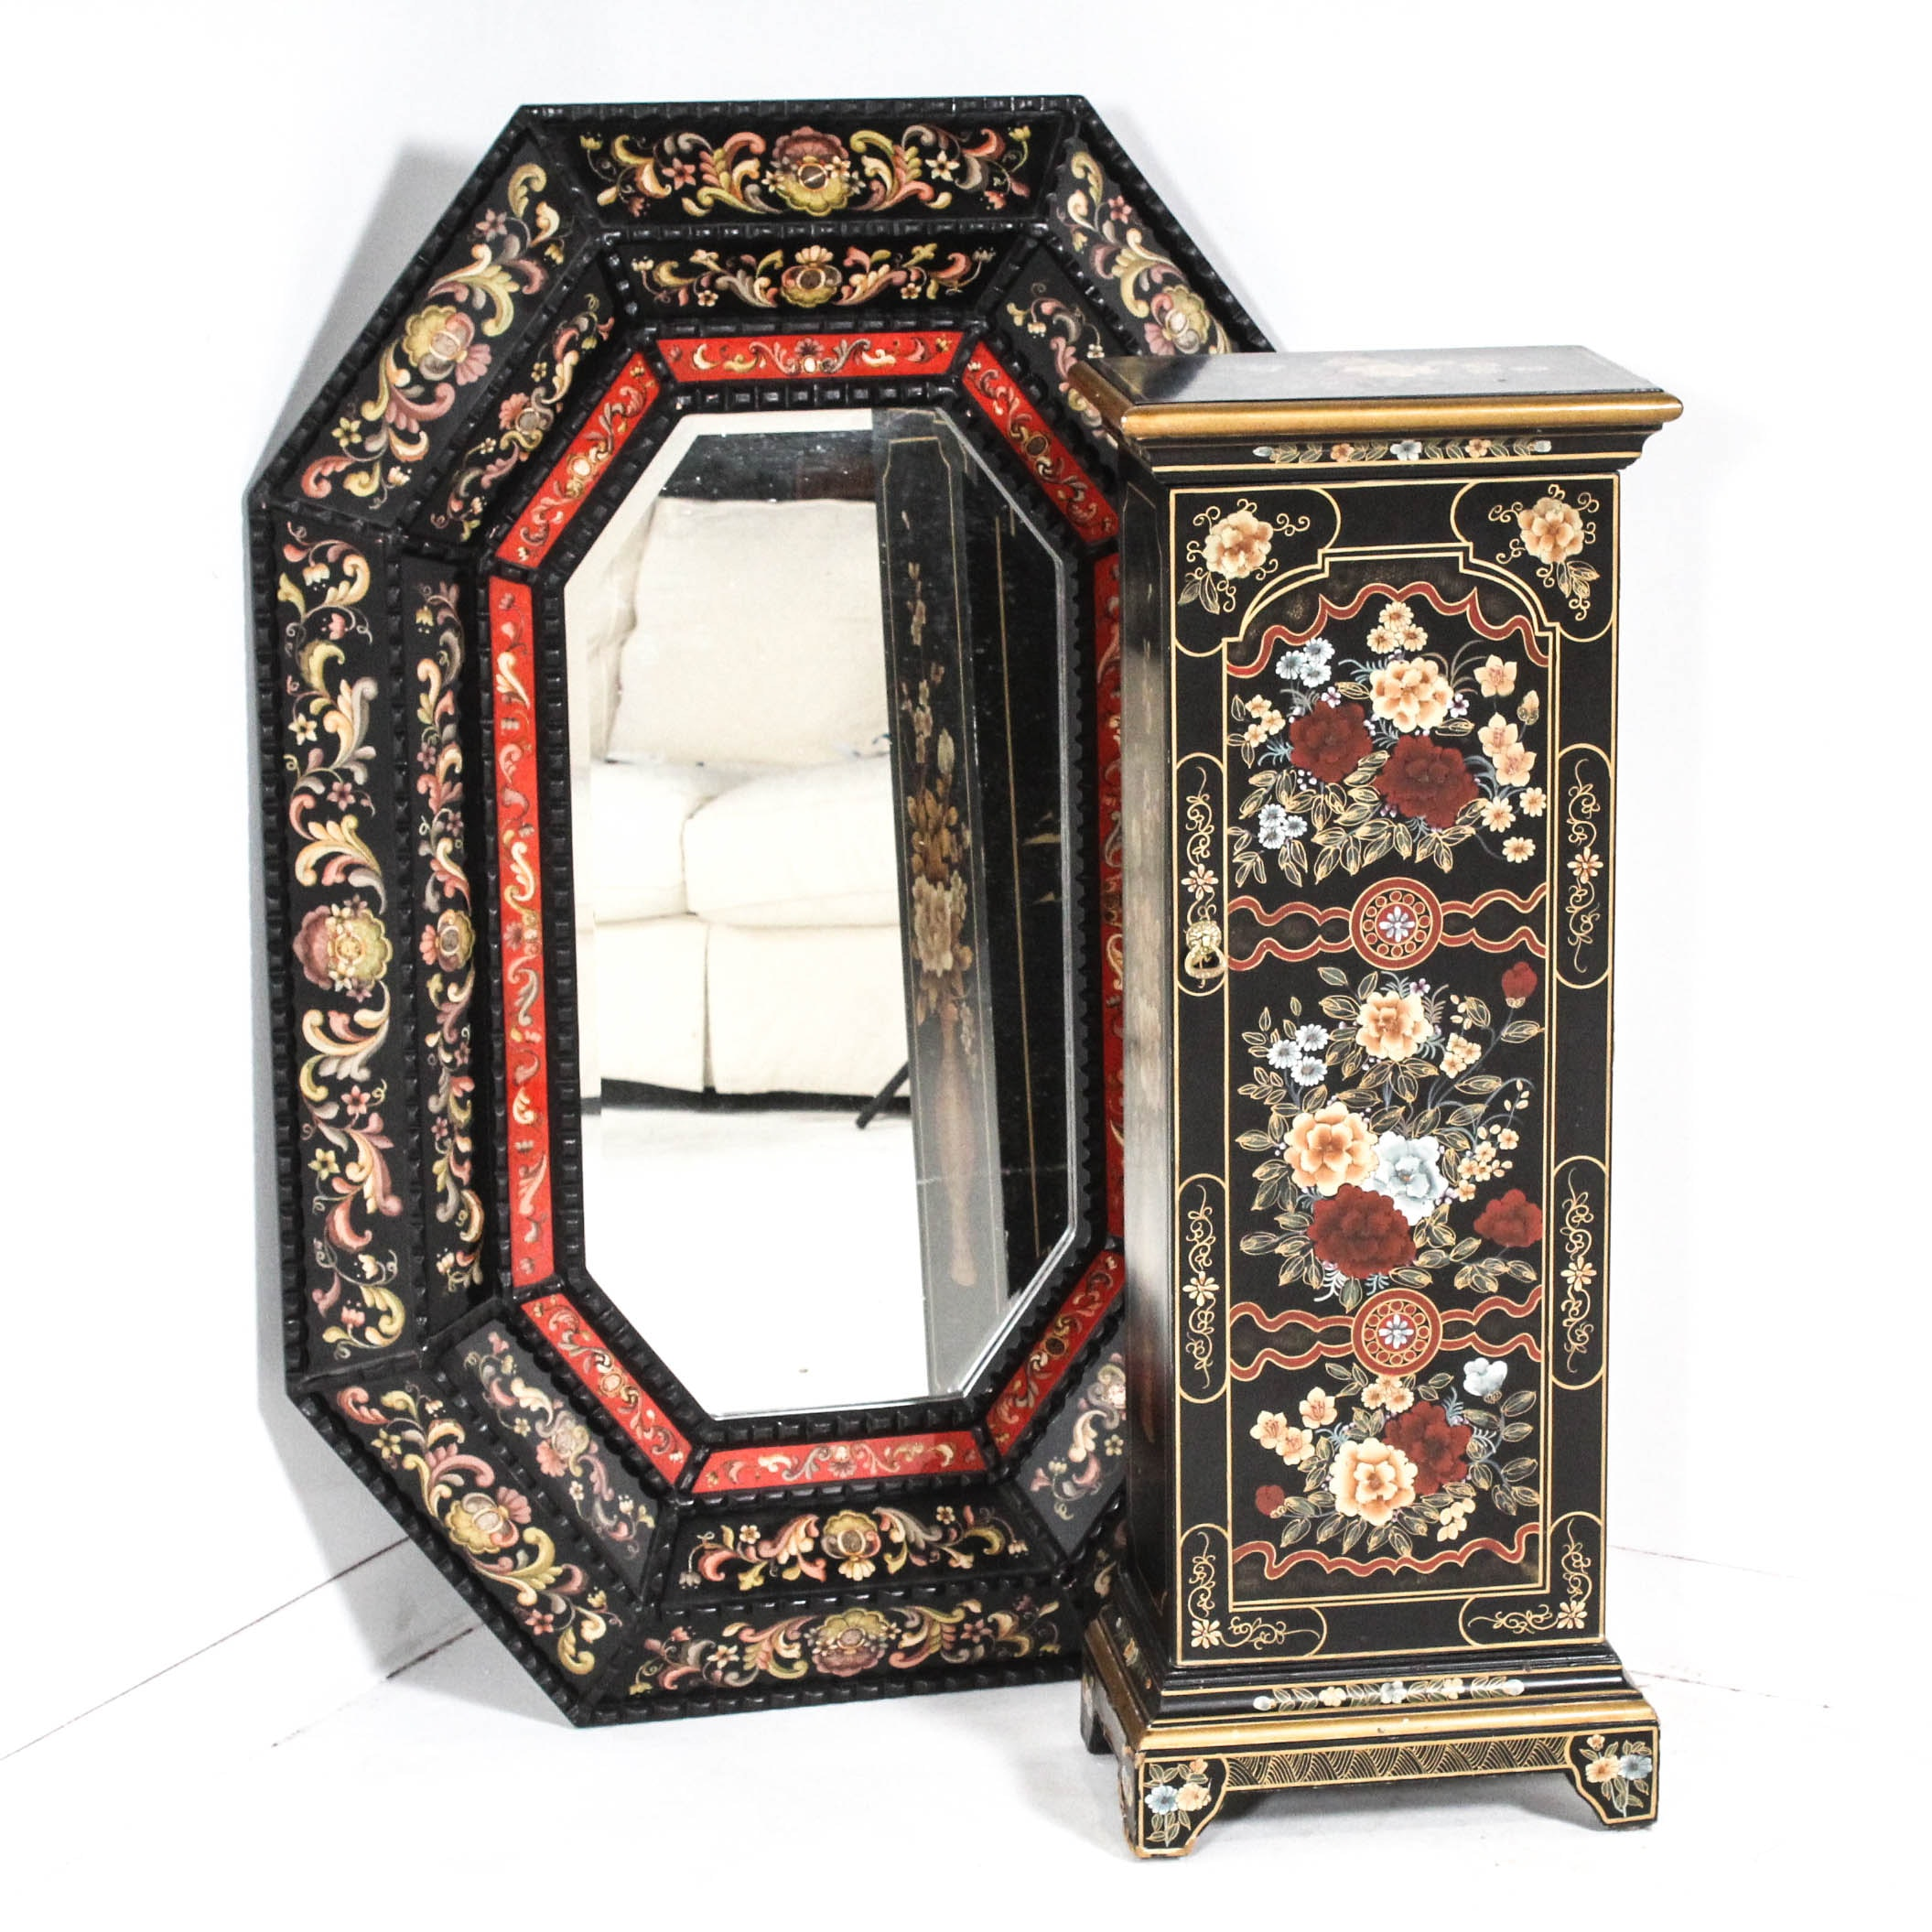 Chinoiserie Wall Mirror and Accent Bookshelf